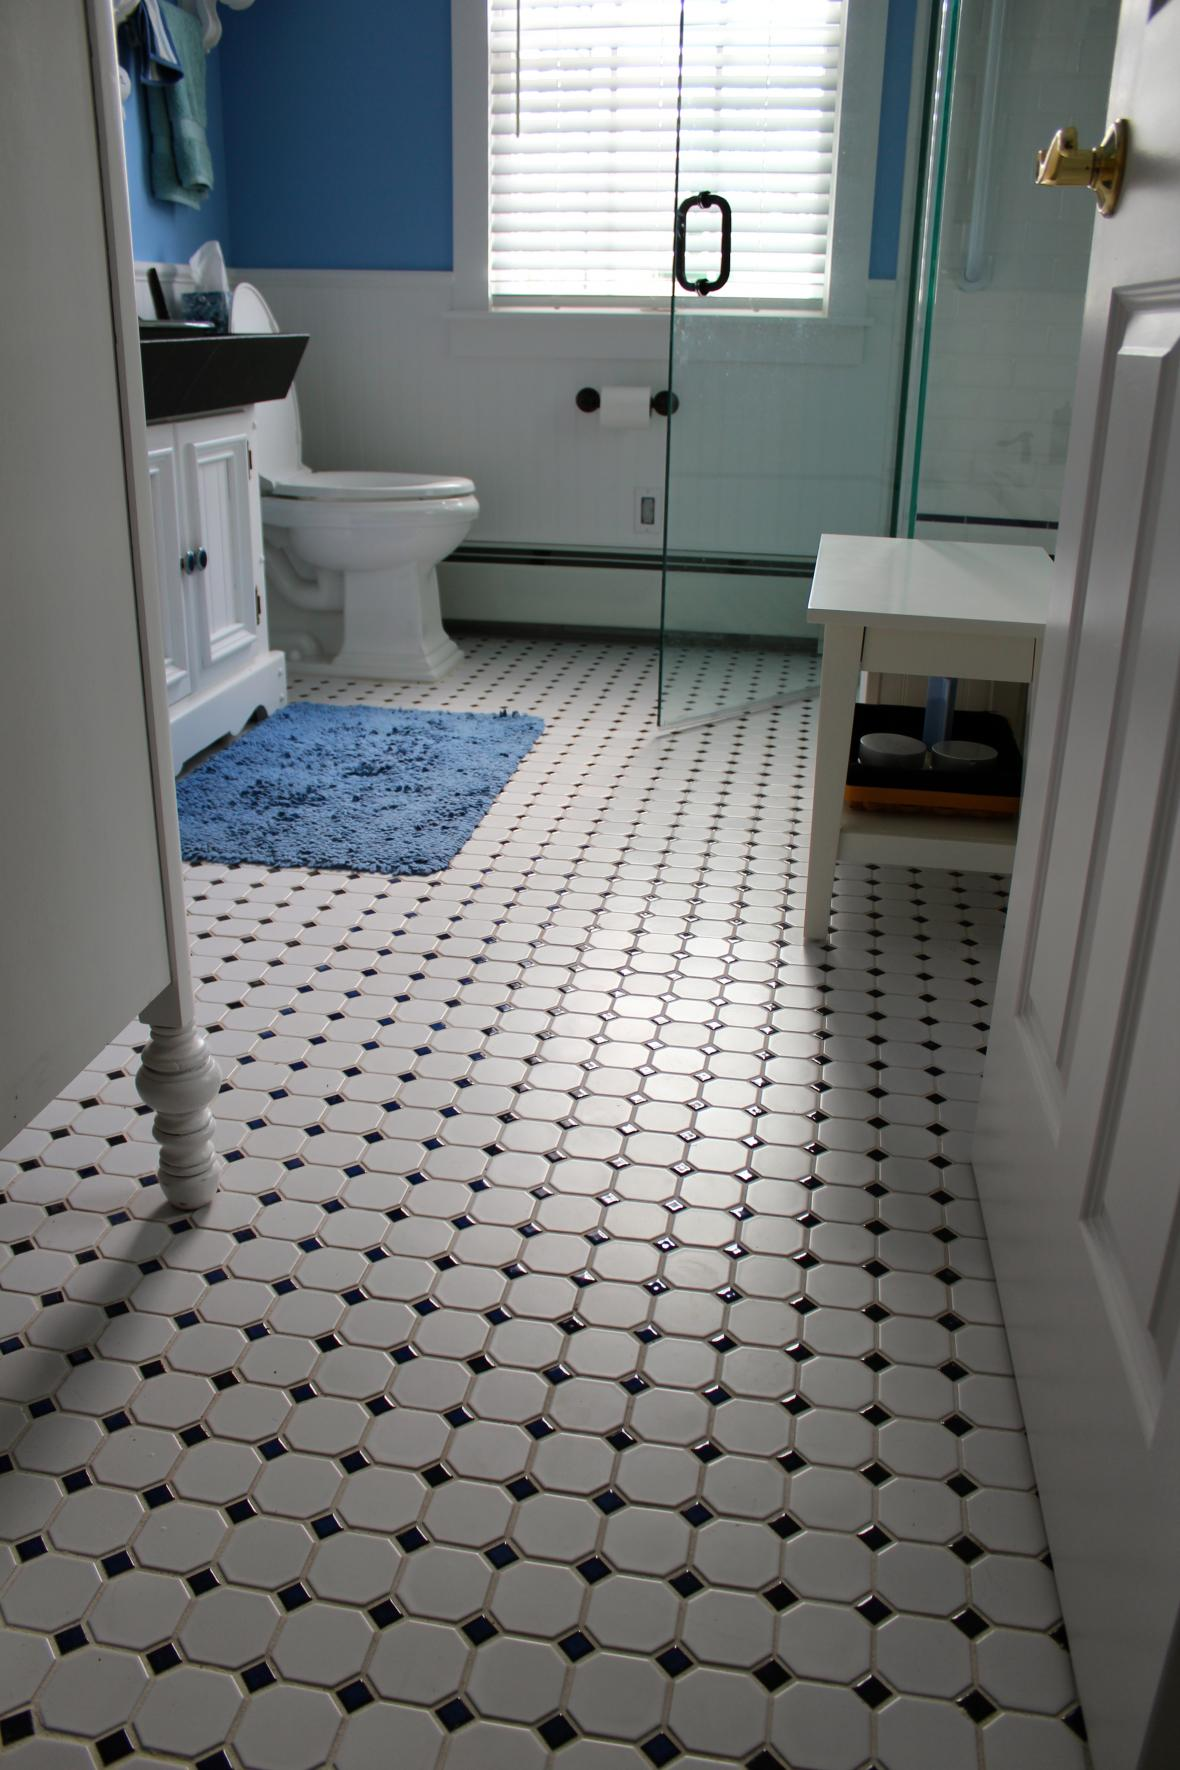 Bathroom Floor Tile Design Pictures : Vintage tile bathroom floor new jersey custom